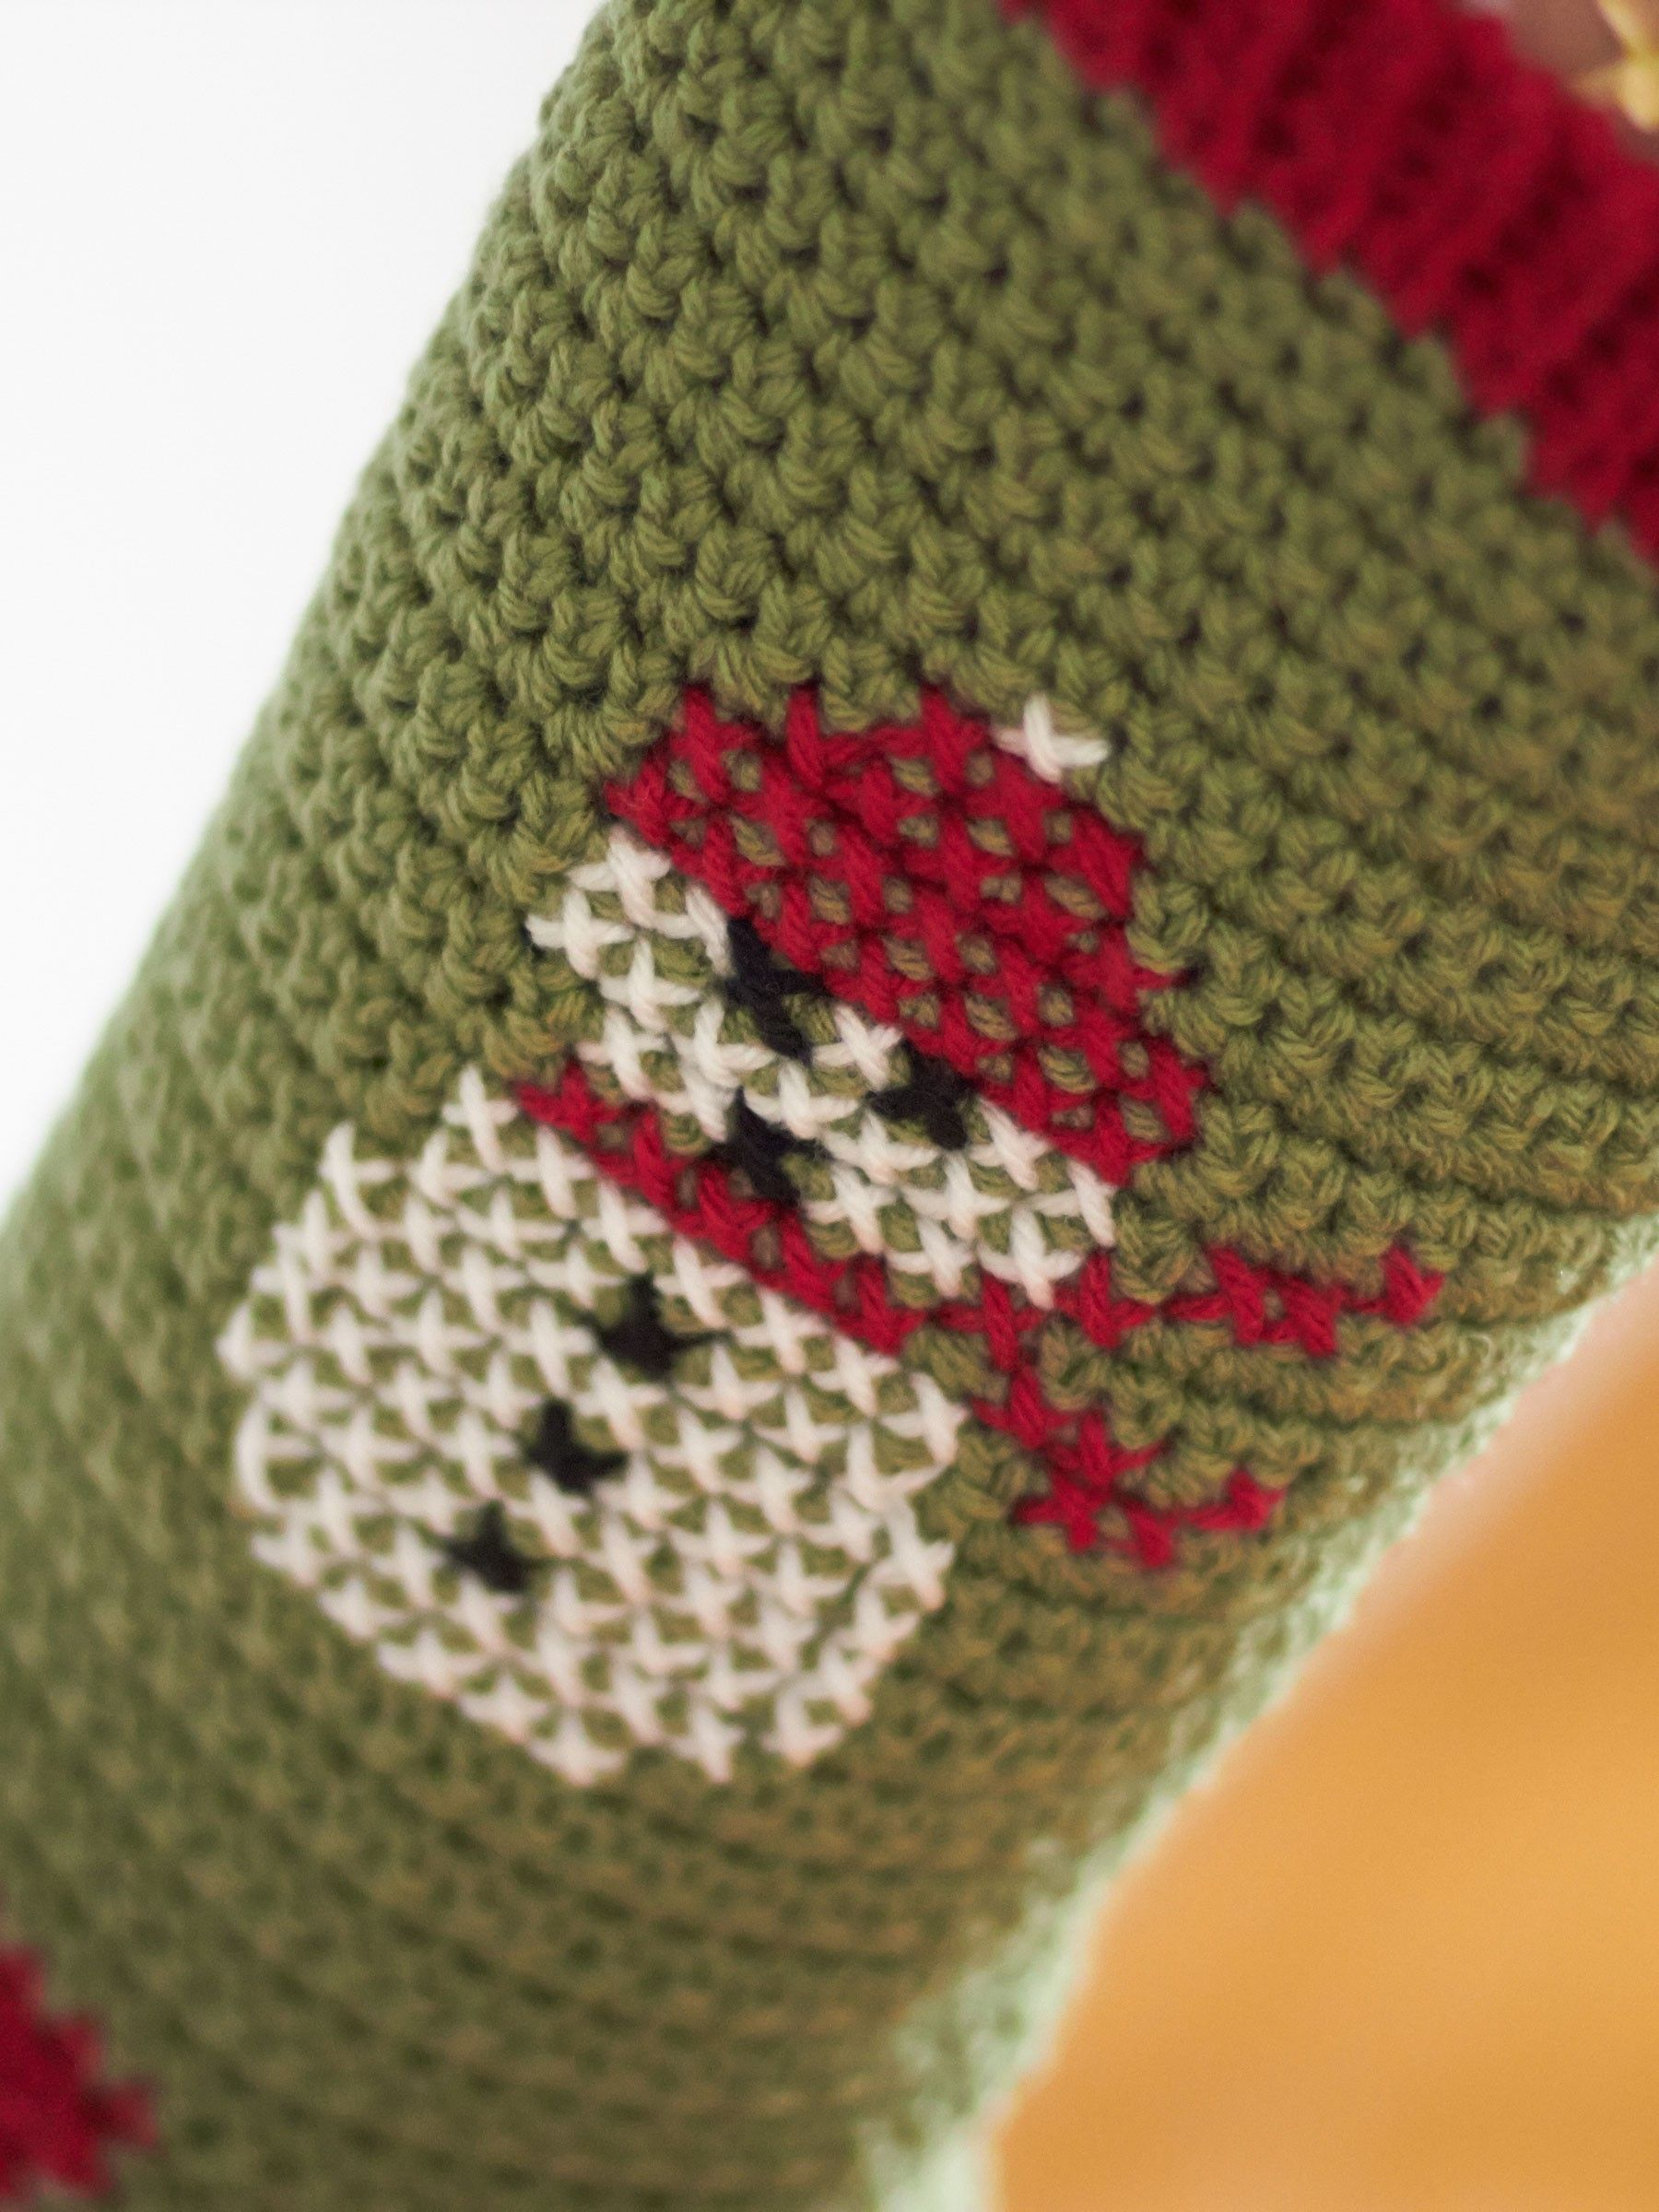 Yarnspirations bernat cross stitch christmas stockings free crochet stocking pattern with snowman wearing red hat and scarf bernat cross stitch christmas stockings yarnspirations bankloansurffo Image collections